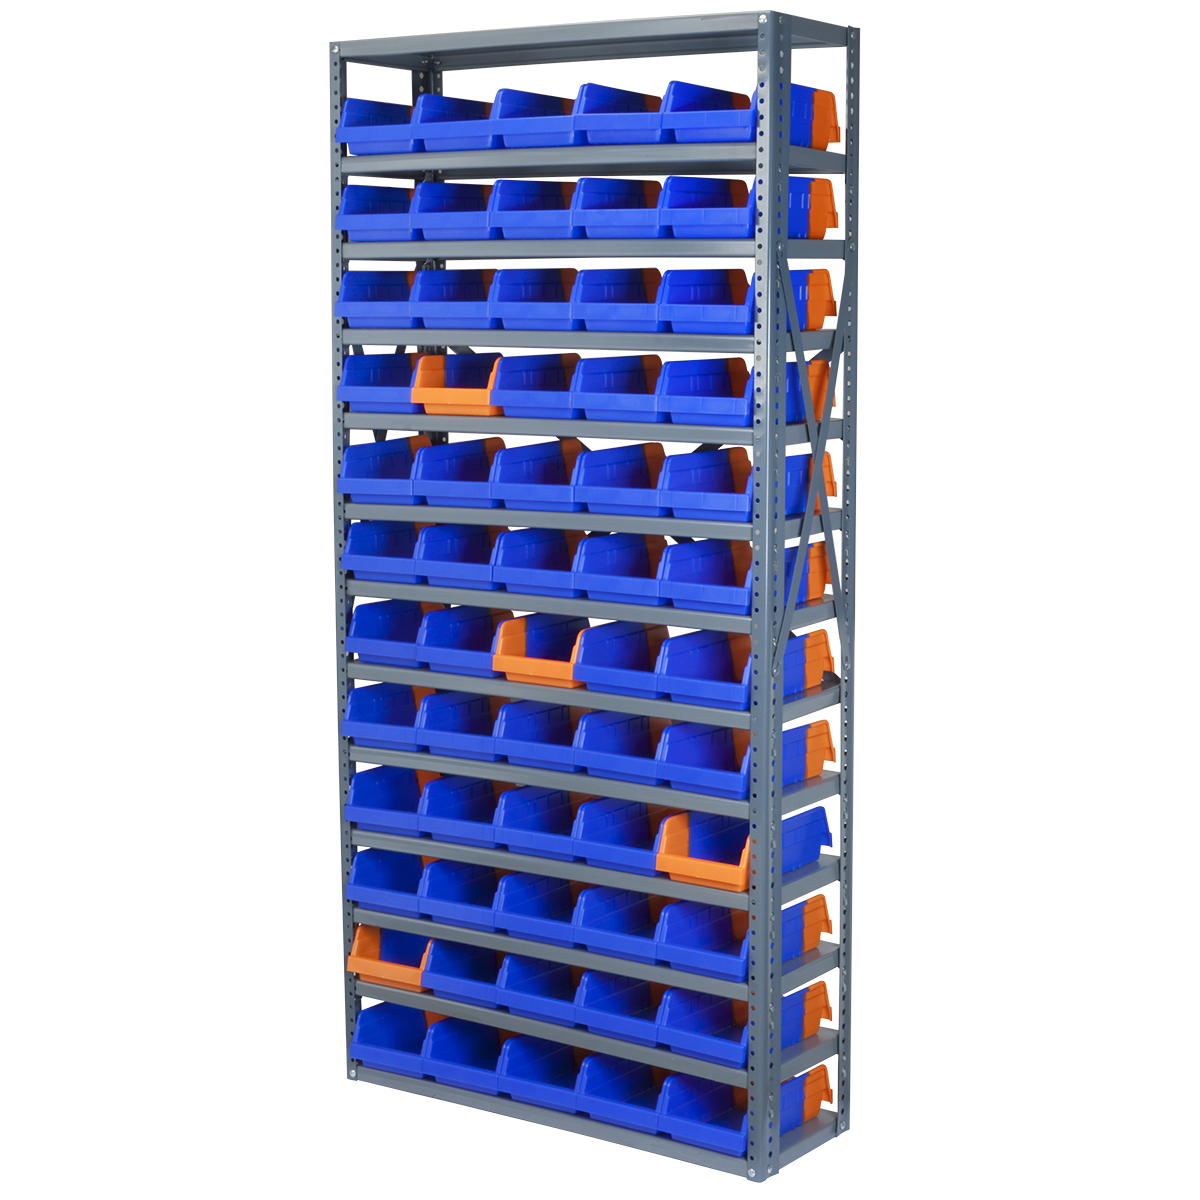 Steel Shelving Kit, 12x36x79, 60 Bins, Gray/Blue/Orange (AS127936462B).  This item sold in carton quantities of 1.